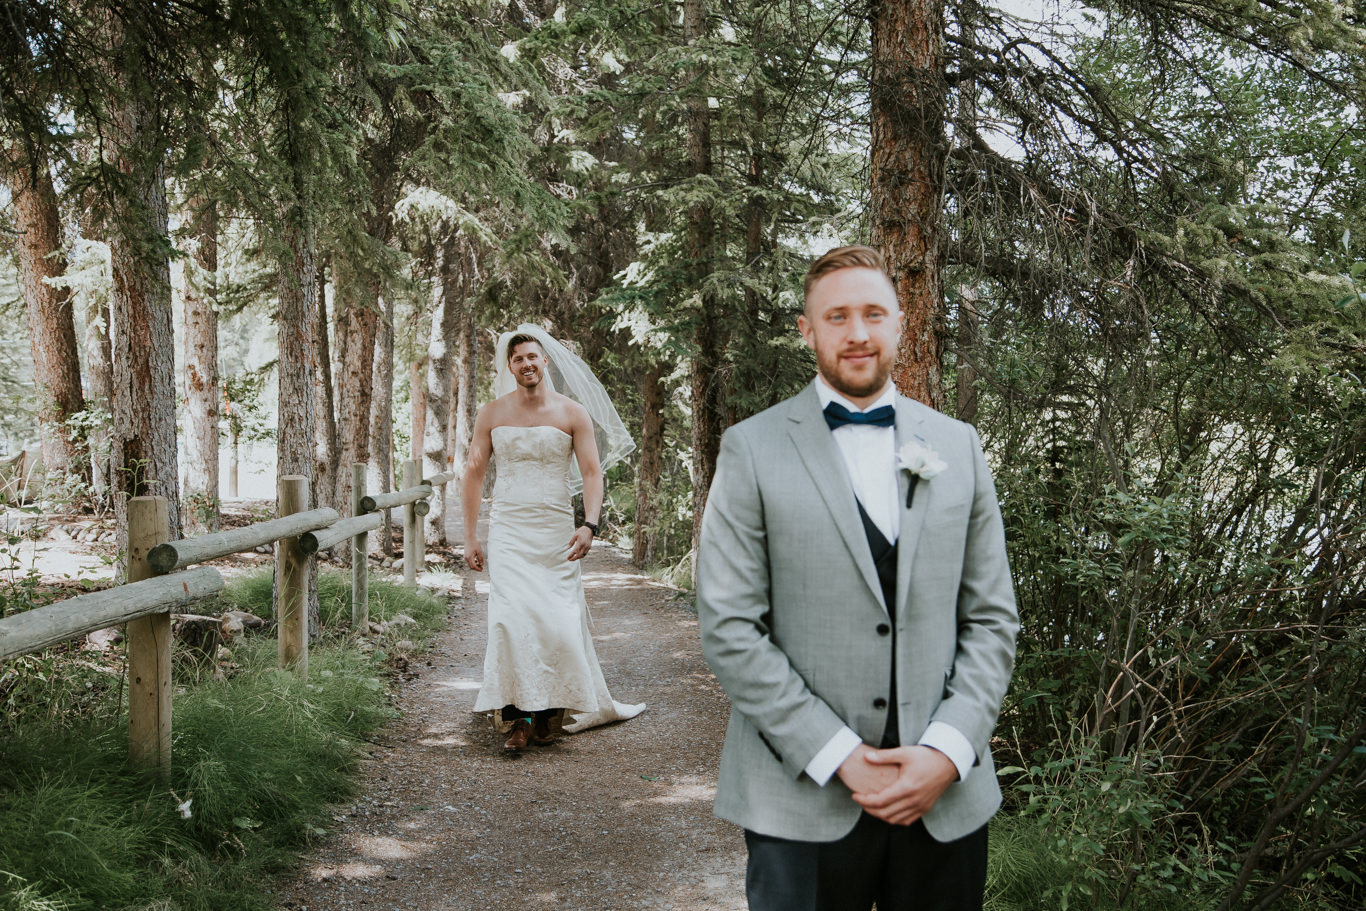 first-look-needs-to-be-crashed-by-your-best-man-in-a-wedding-dress-2